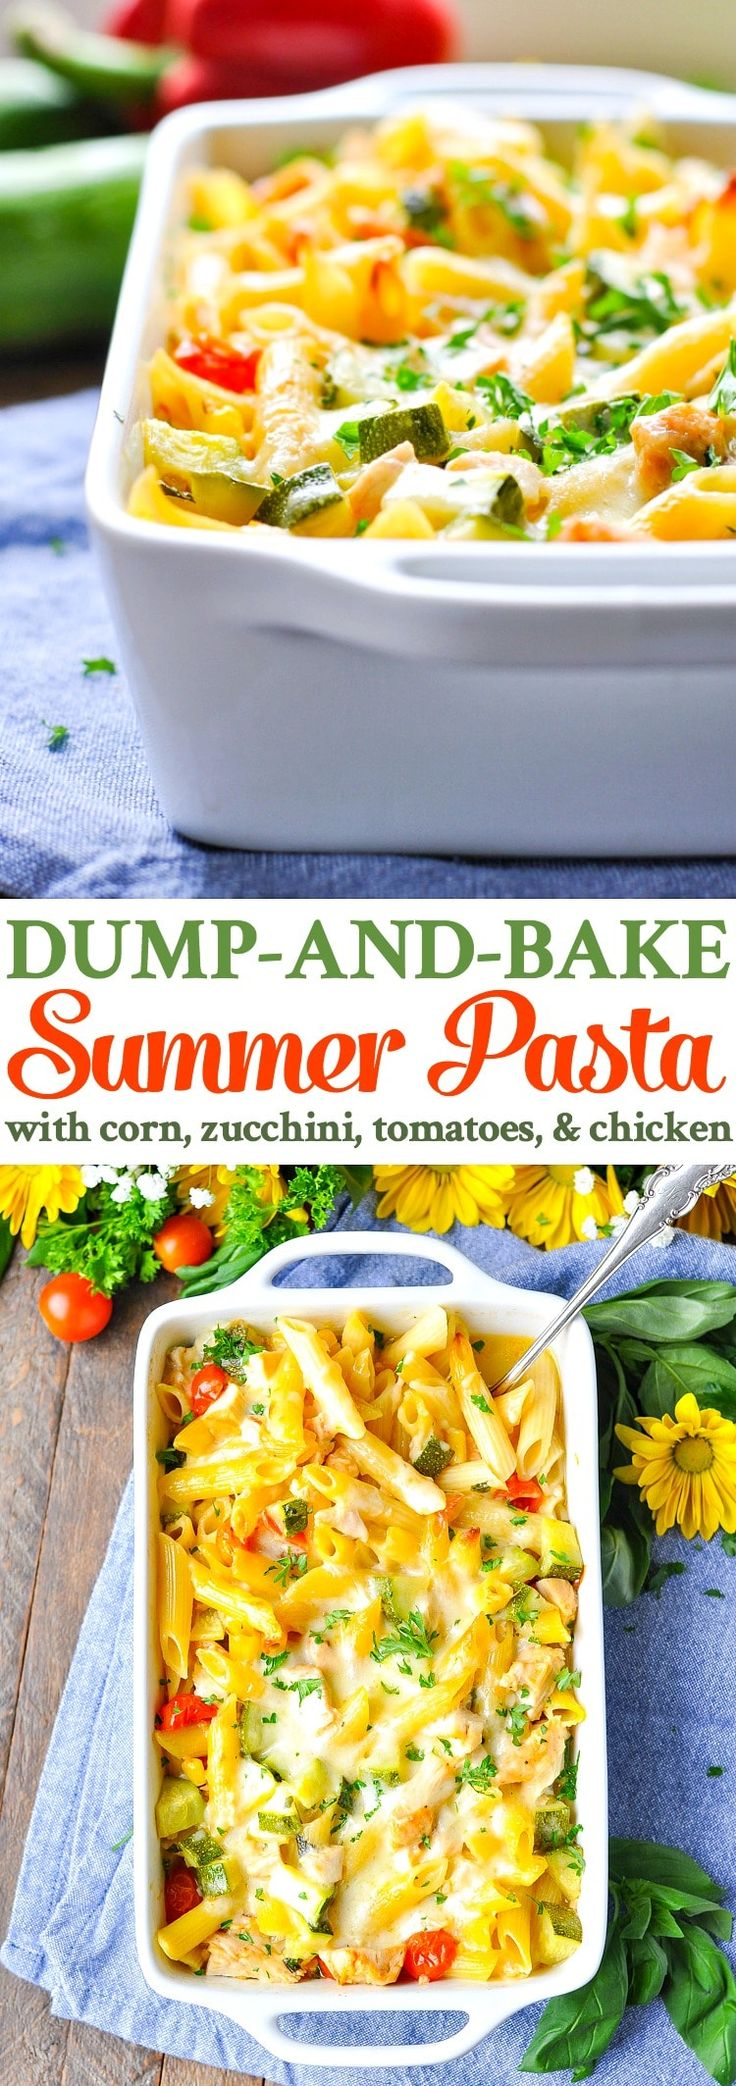 Dump and Bake Summer Pasta with Corn, Zucchini, Tomatoes and Chicken